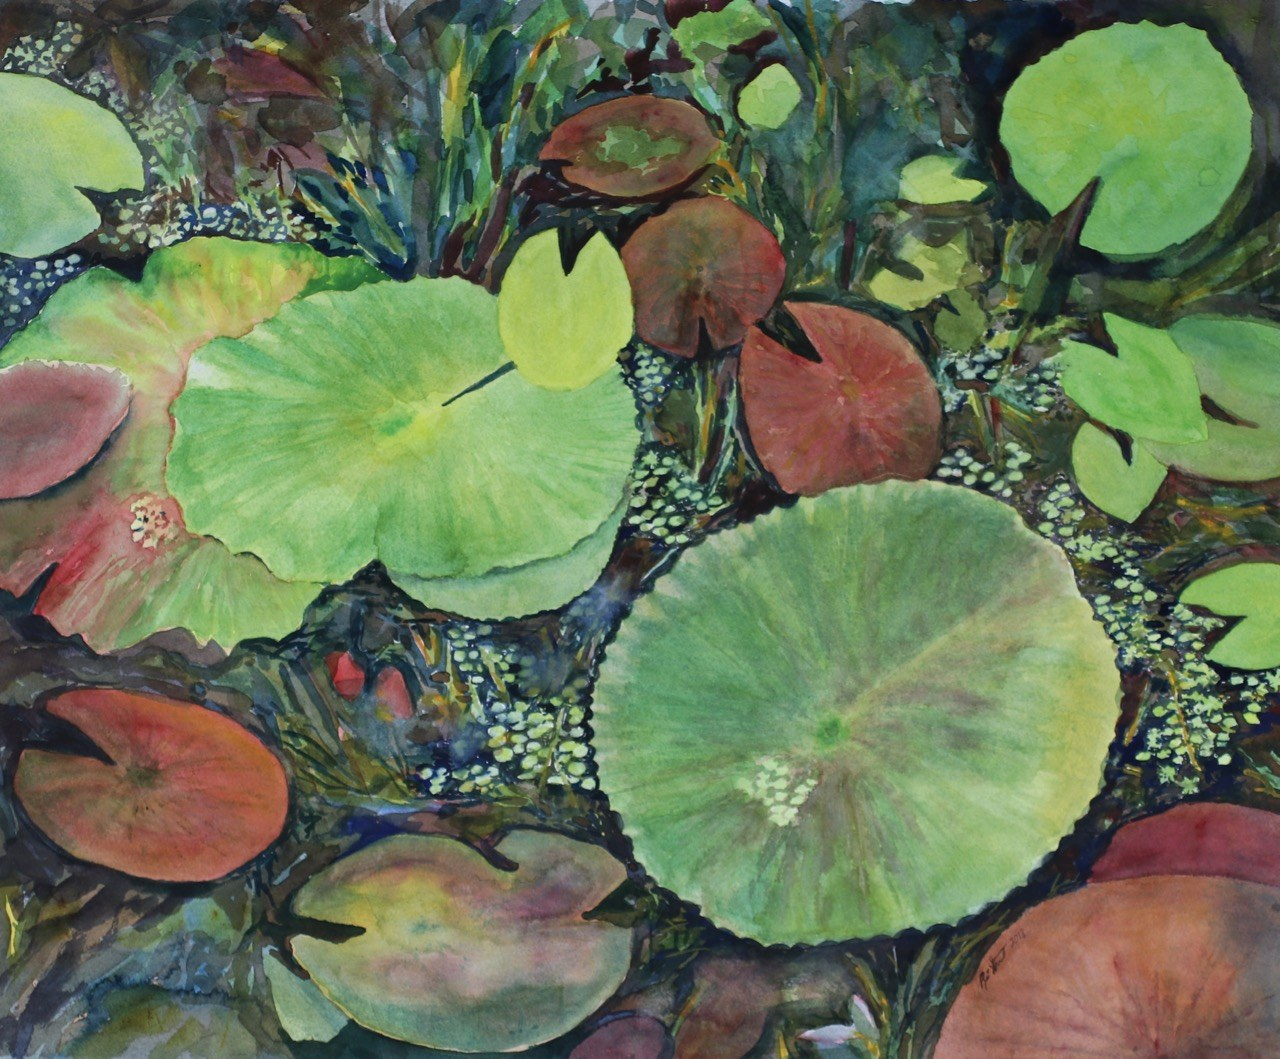 Stewart, Renee, Lilypads at McKee, watercolor, 24x20, $400